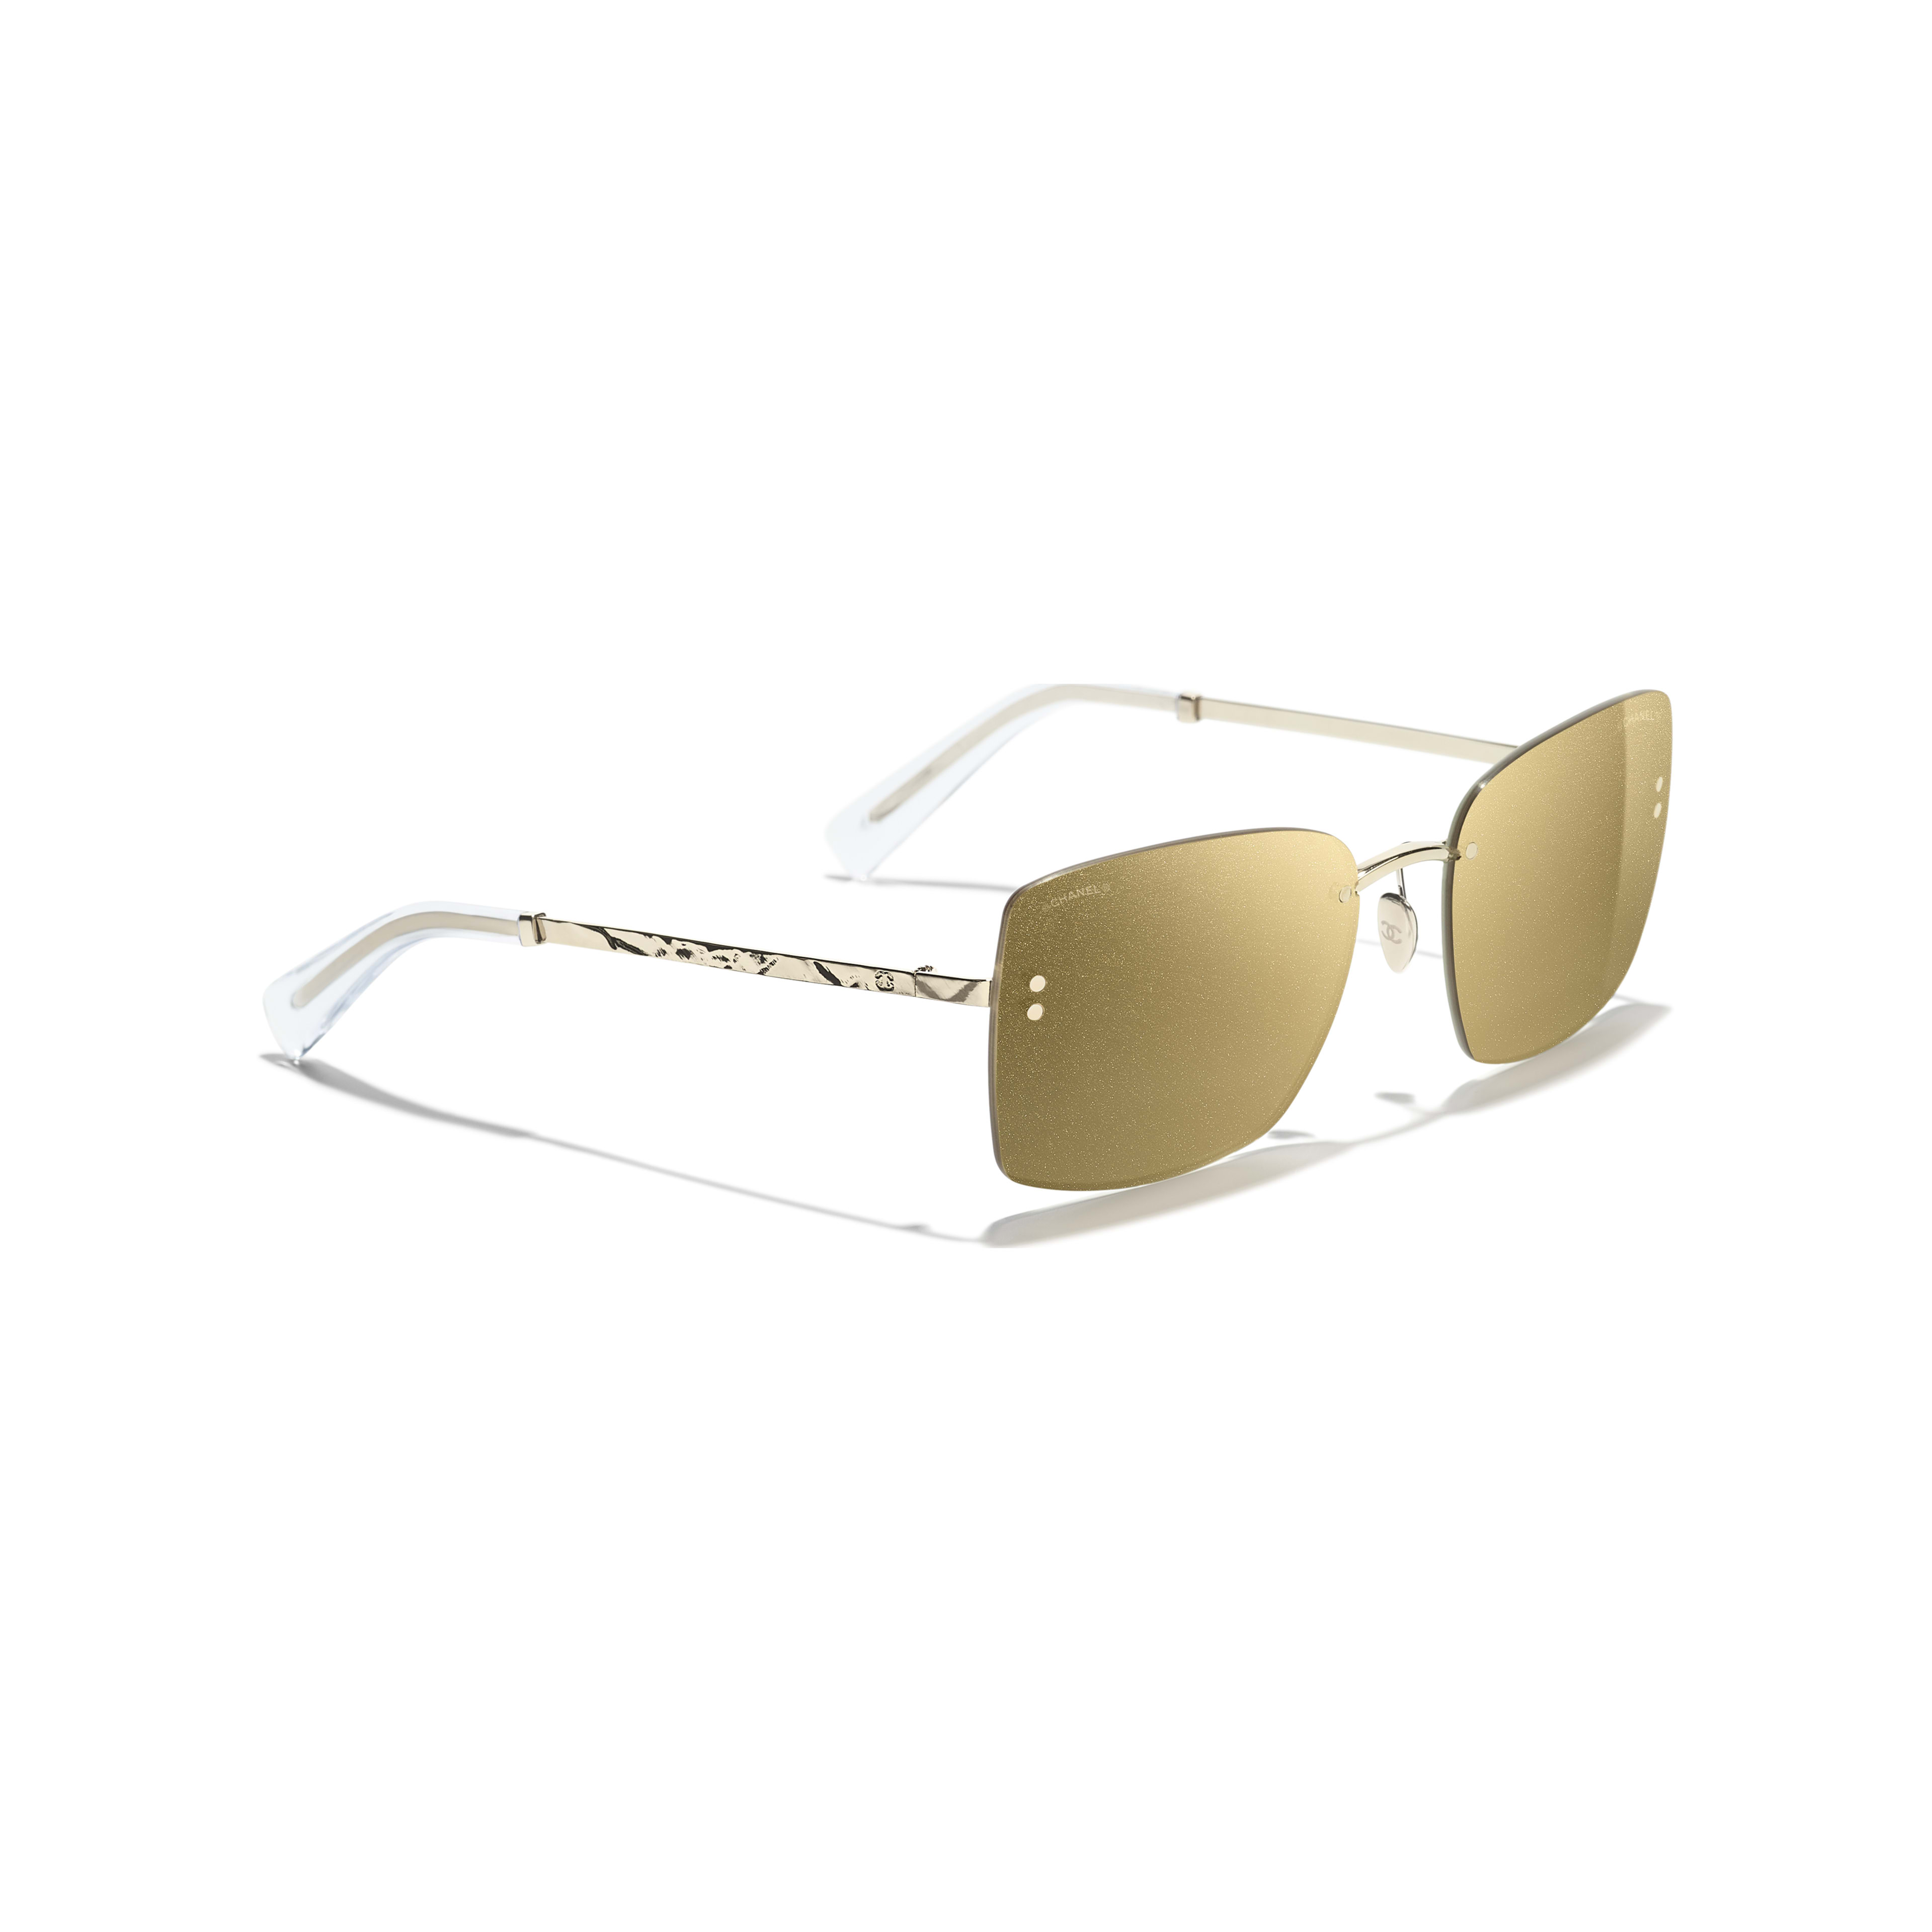 Square Sunglasses - Gold - Metal - Extra view - see full sized version